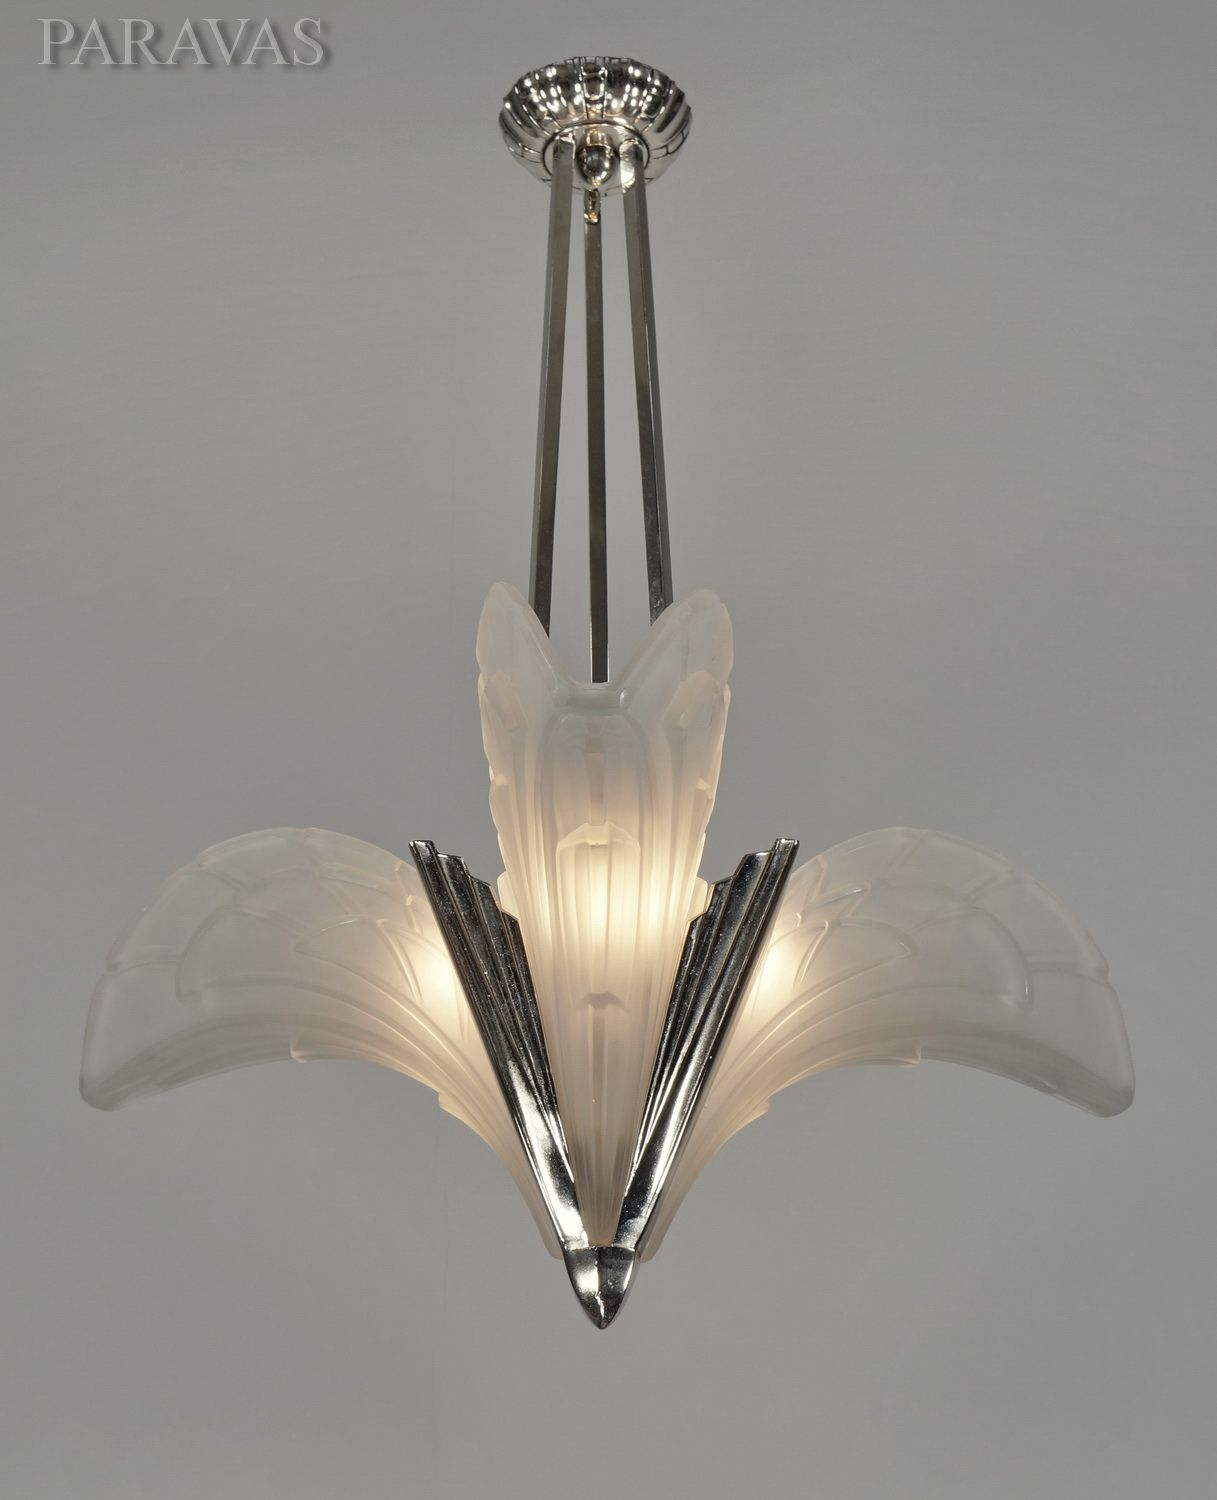 Art Deco Lampen French 1930 Art Deco Chandelier With Slip Shades By Ejg Paravas